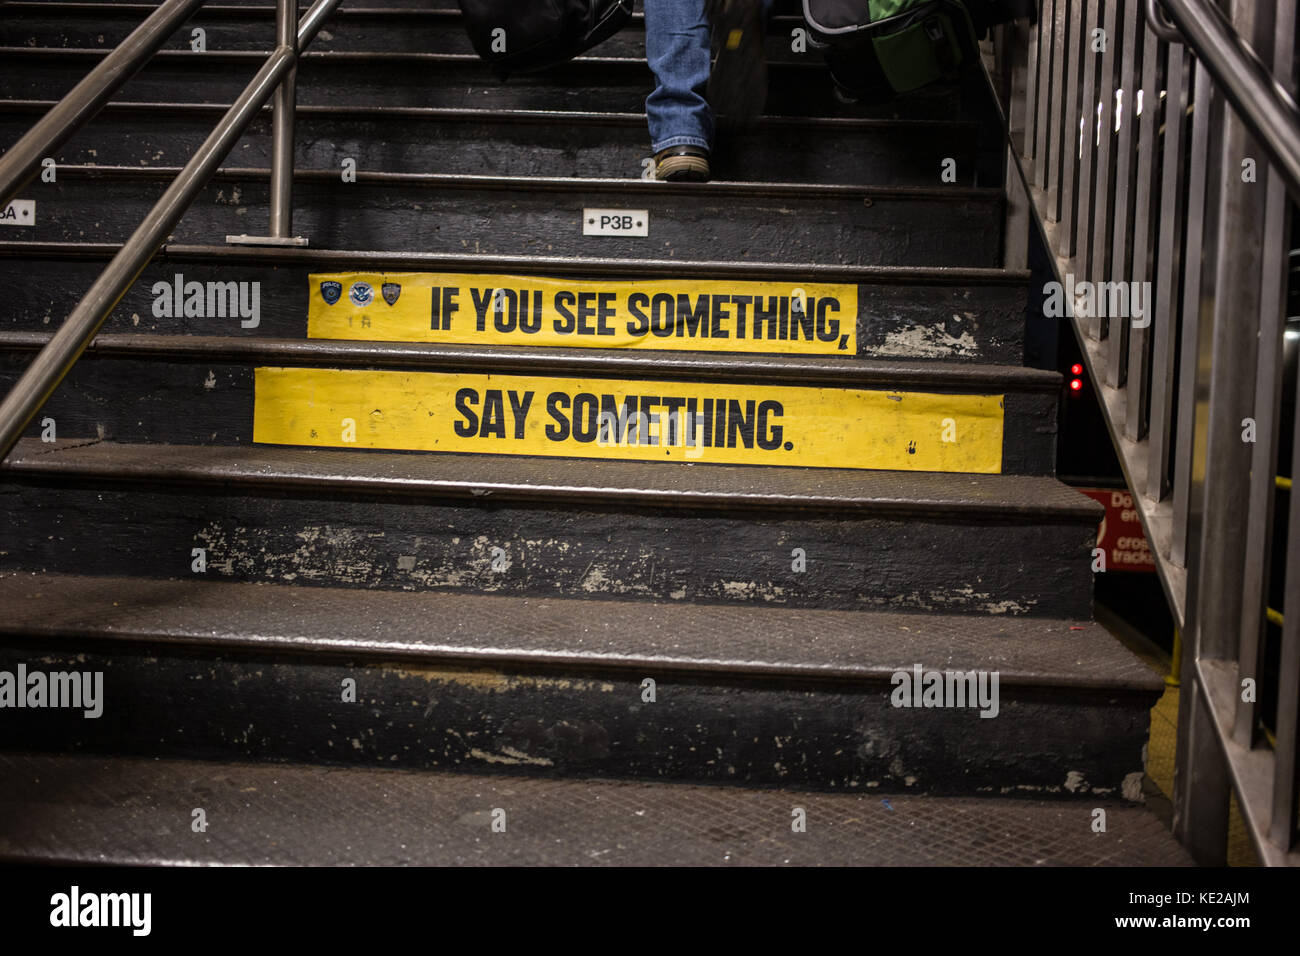 'If You See Something, Say Something' advertisement on stairs in subway station in Manhattan, NY. - Stock Image